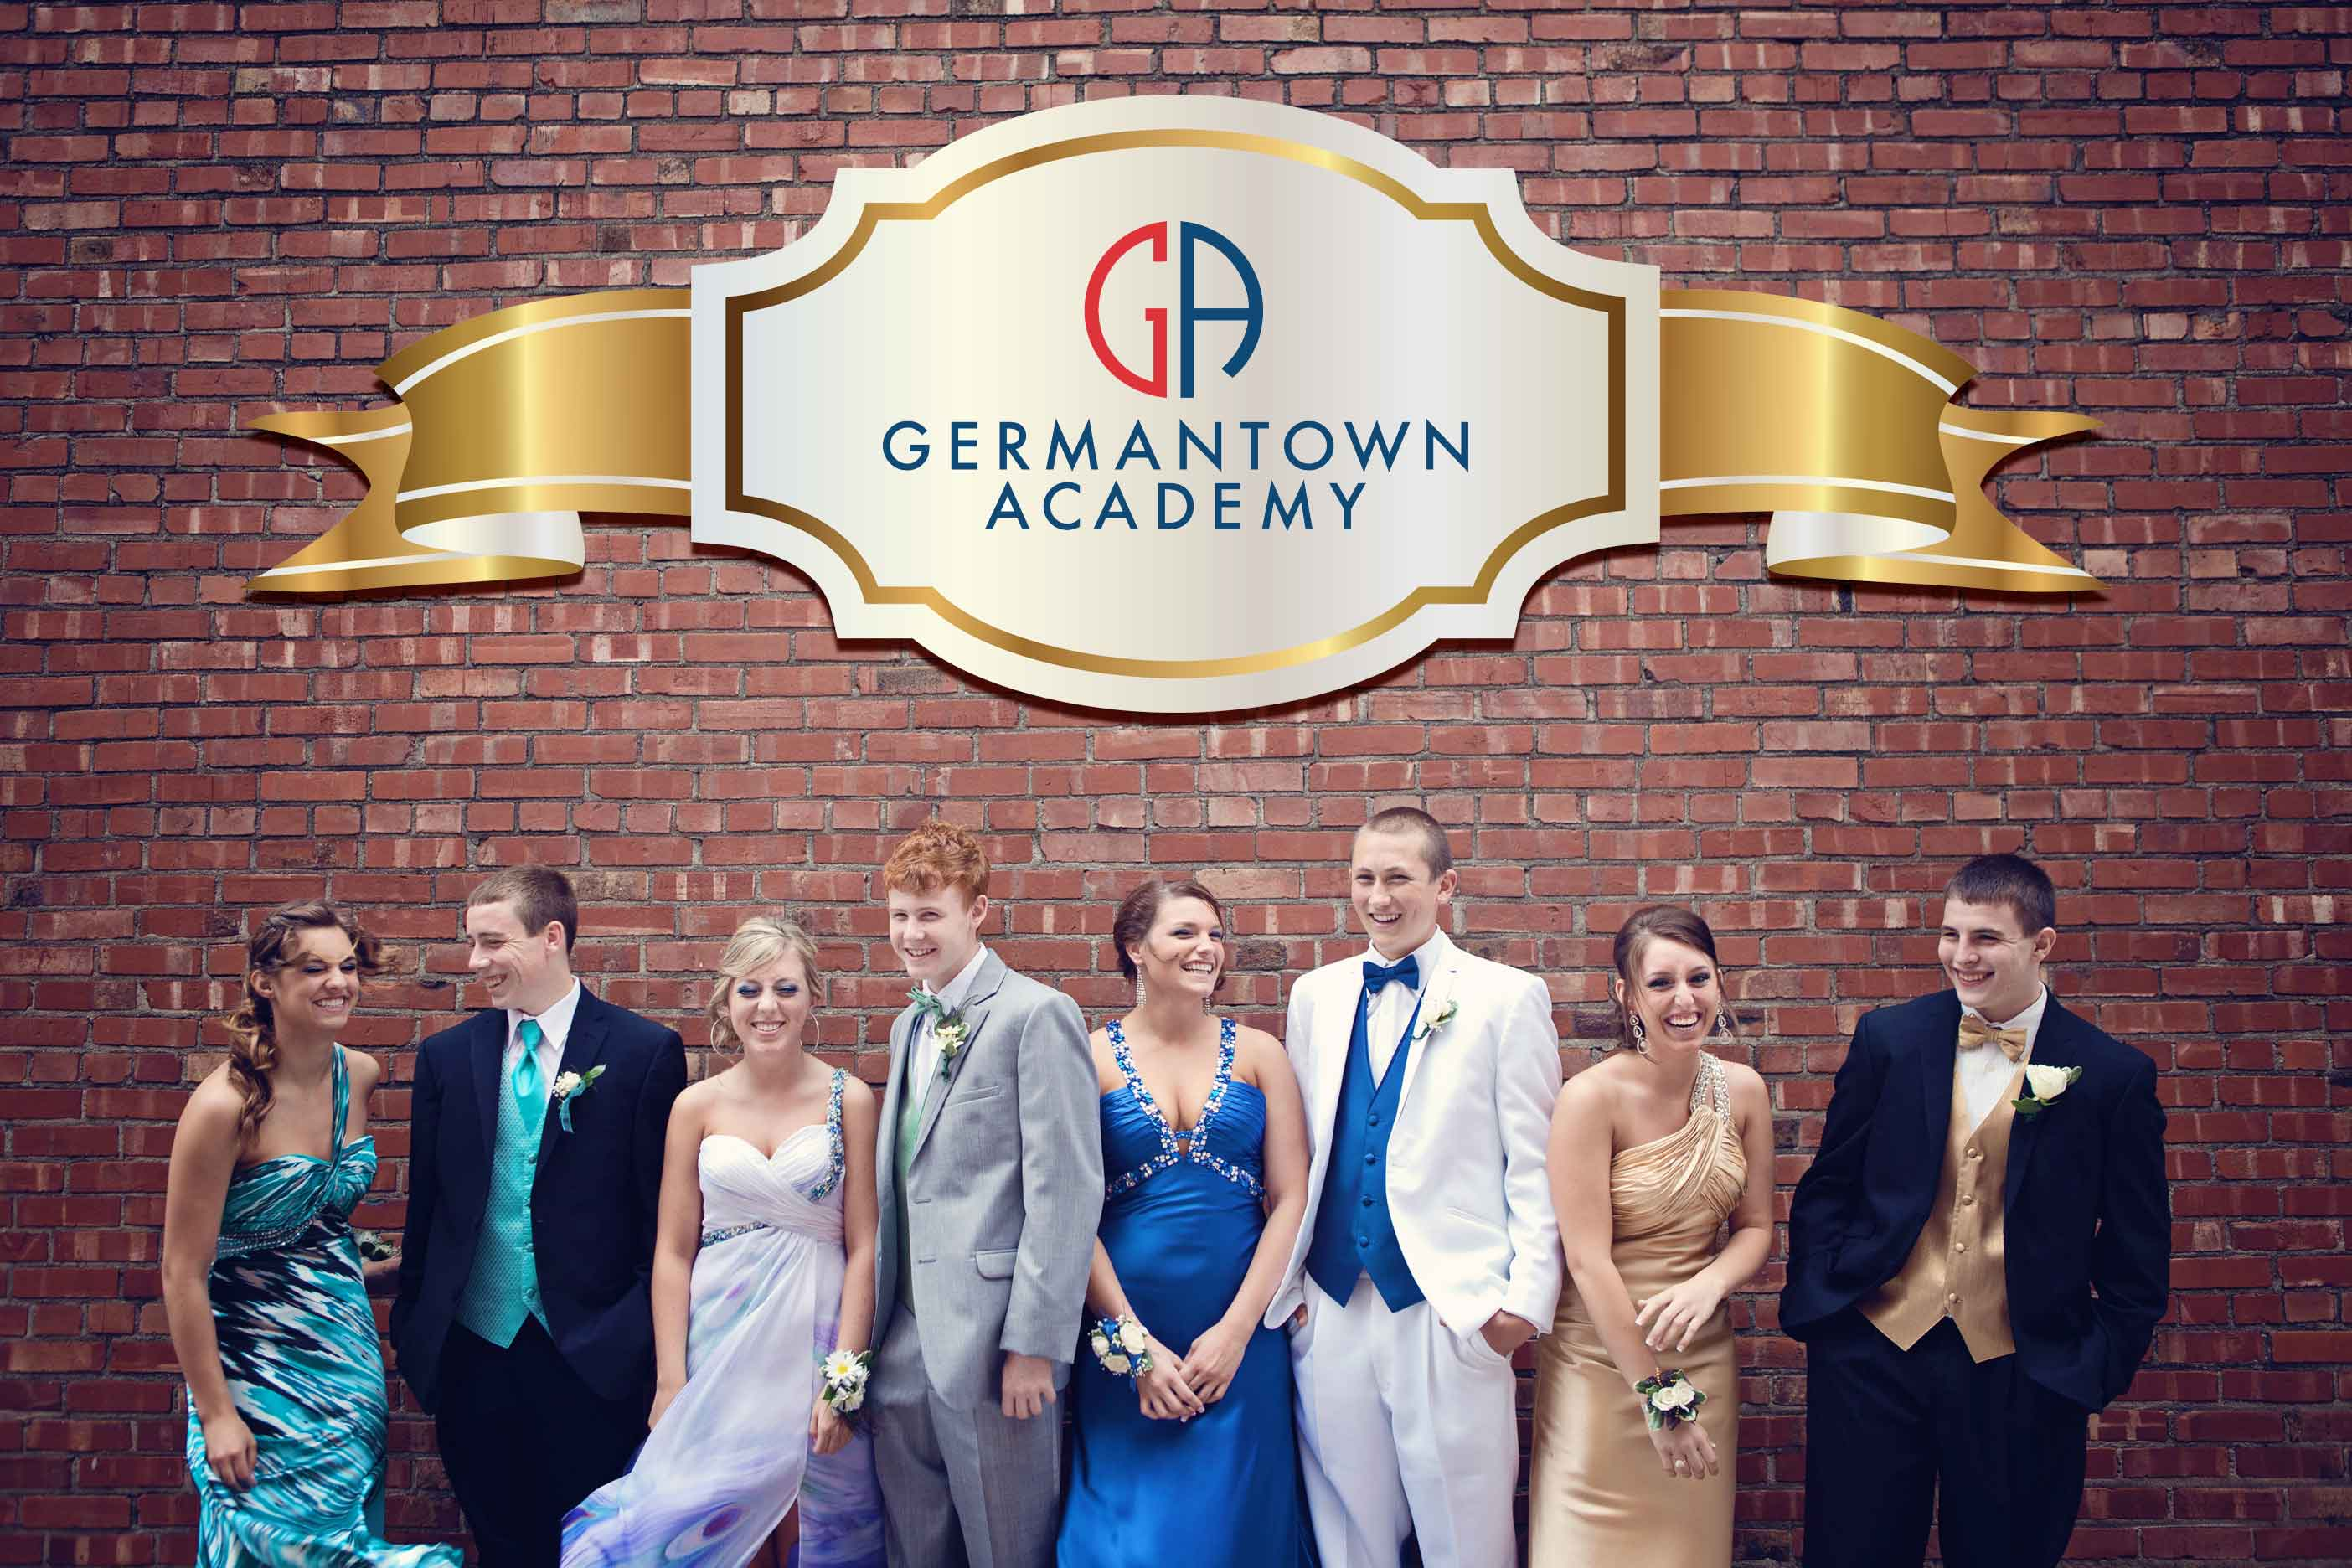 germantown academy prom